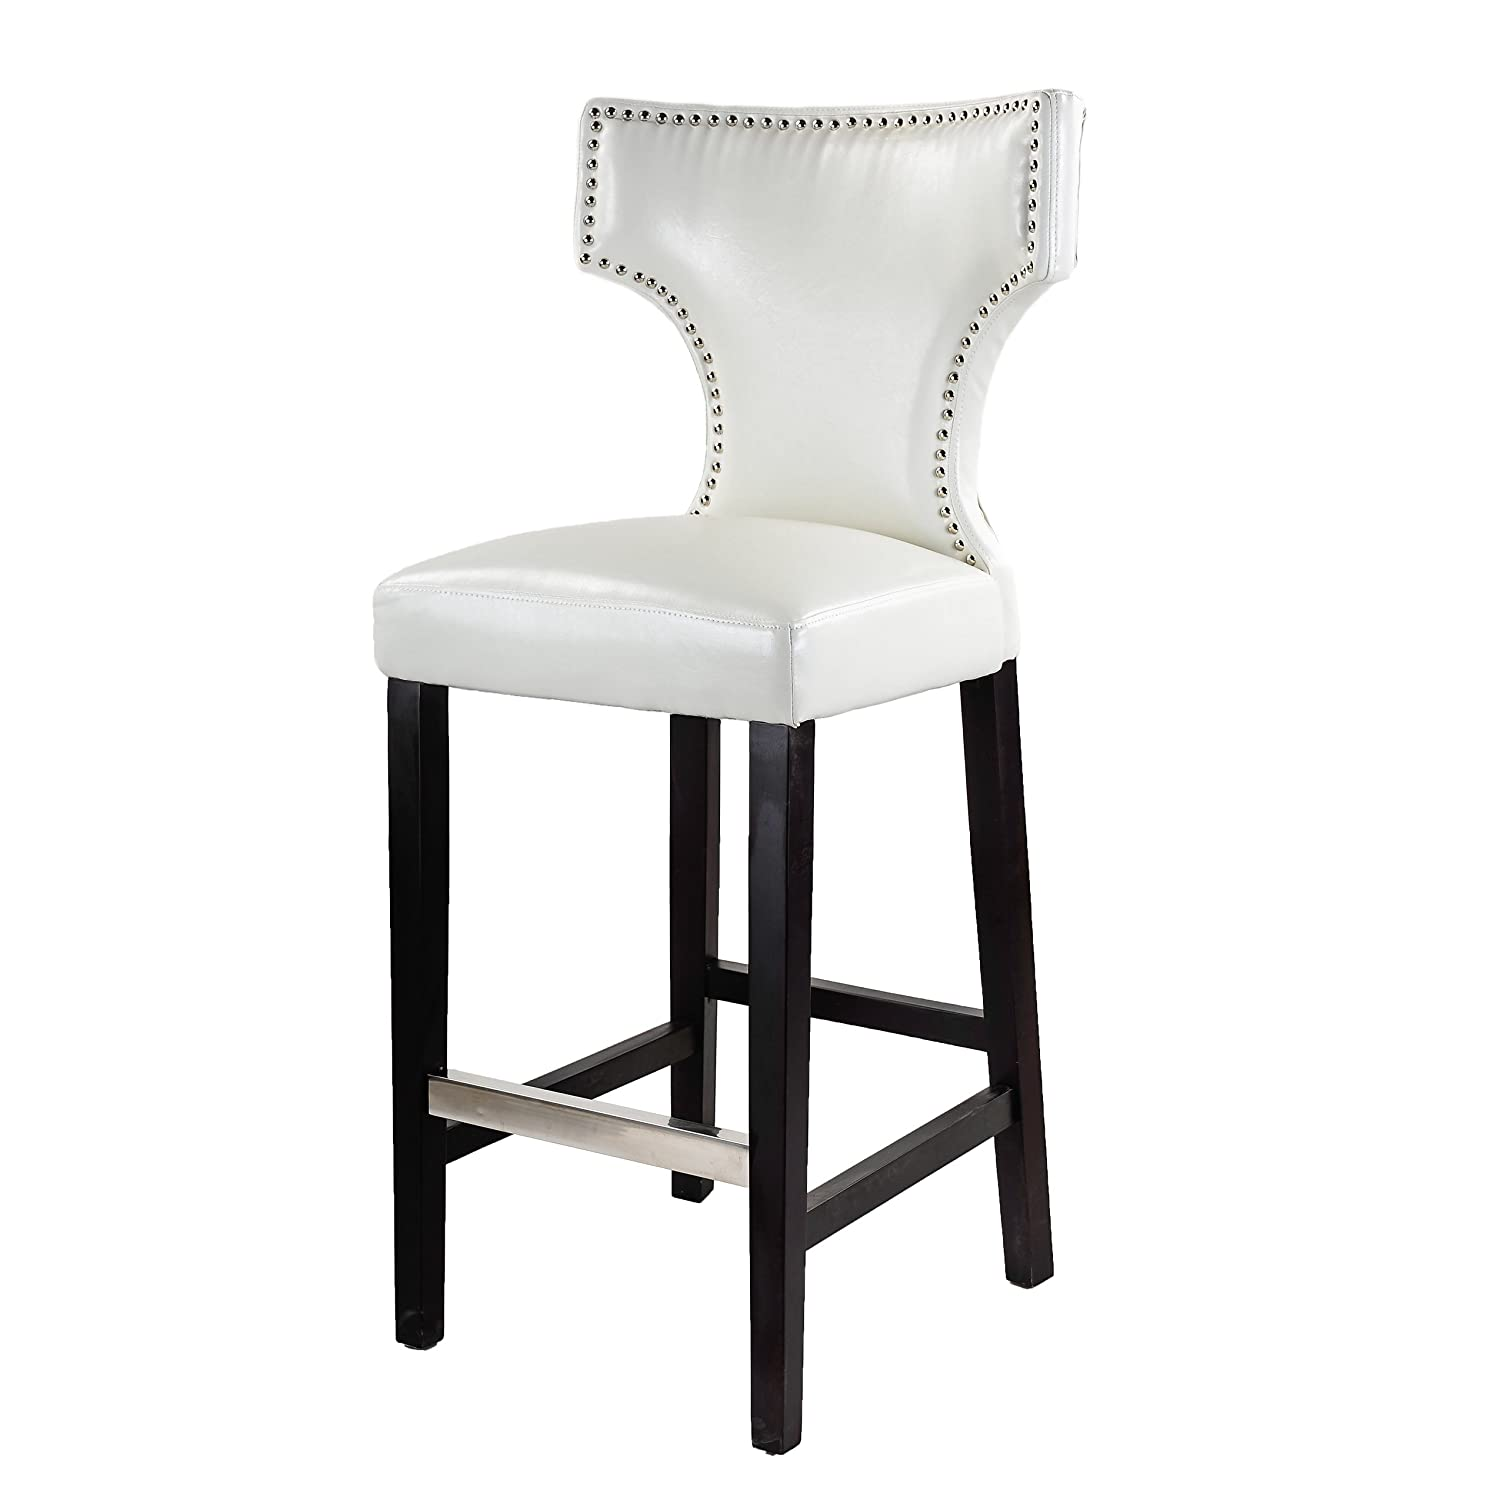 Amazon CorLiving DAD 819 B Kings Bar Height Barstool in White